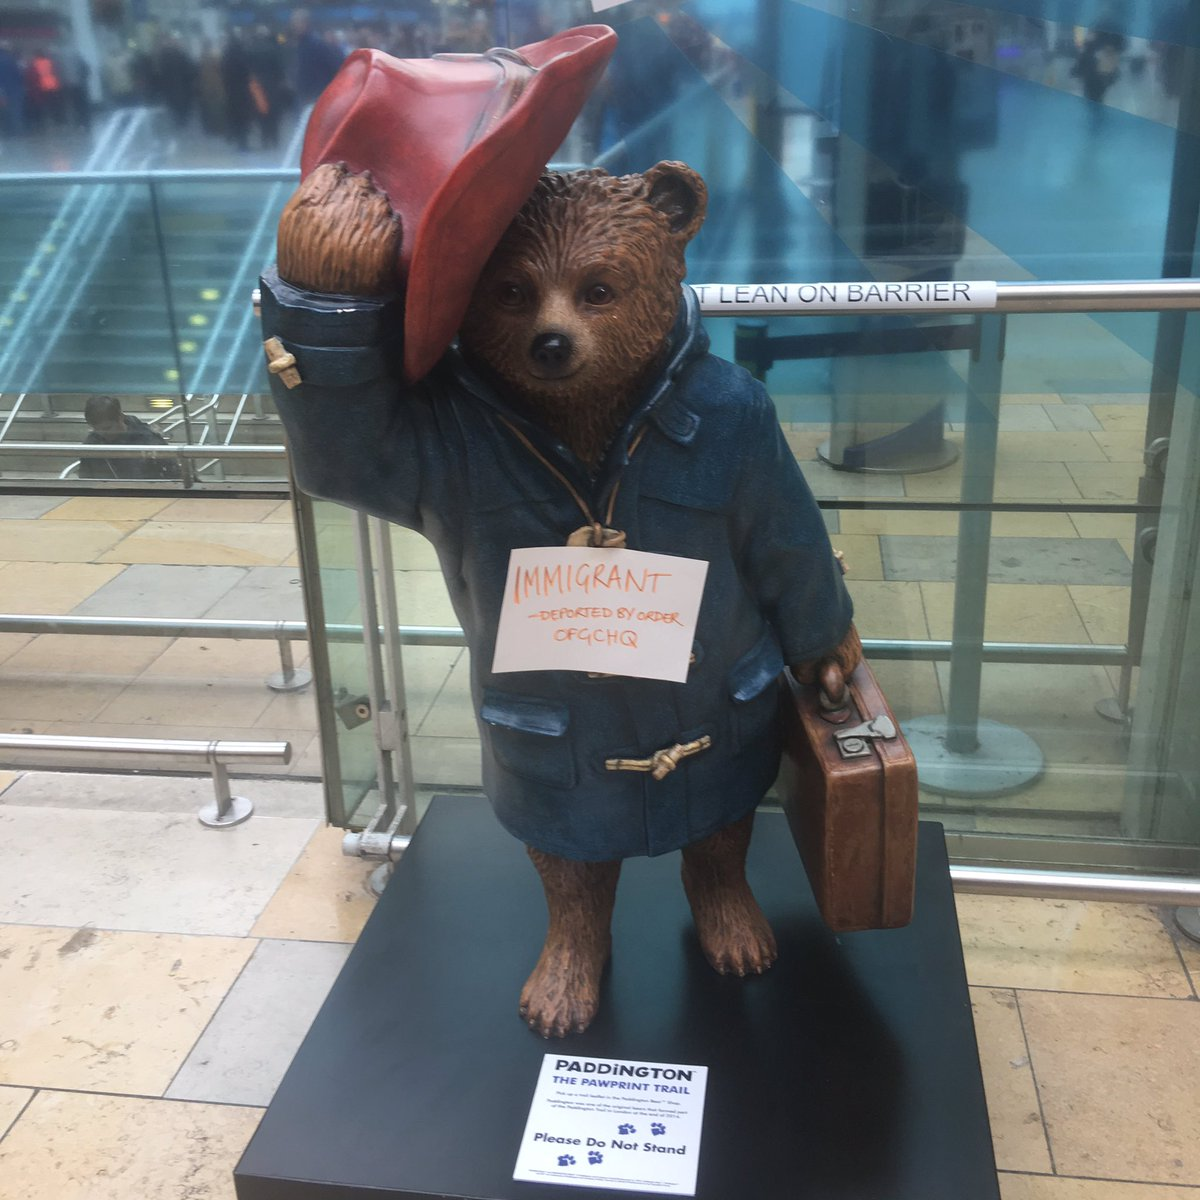 Another job-stealing immigrant at Paddington station this morning. Thank goodness the government is sorting this ou… https://t.co/5YonADxtwG